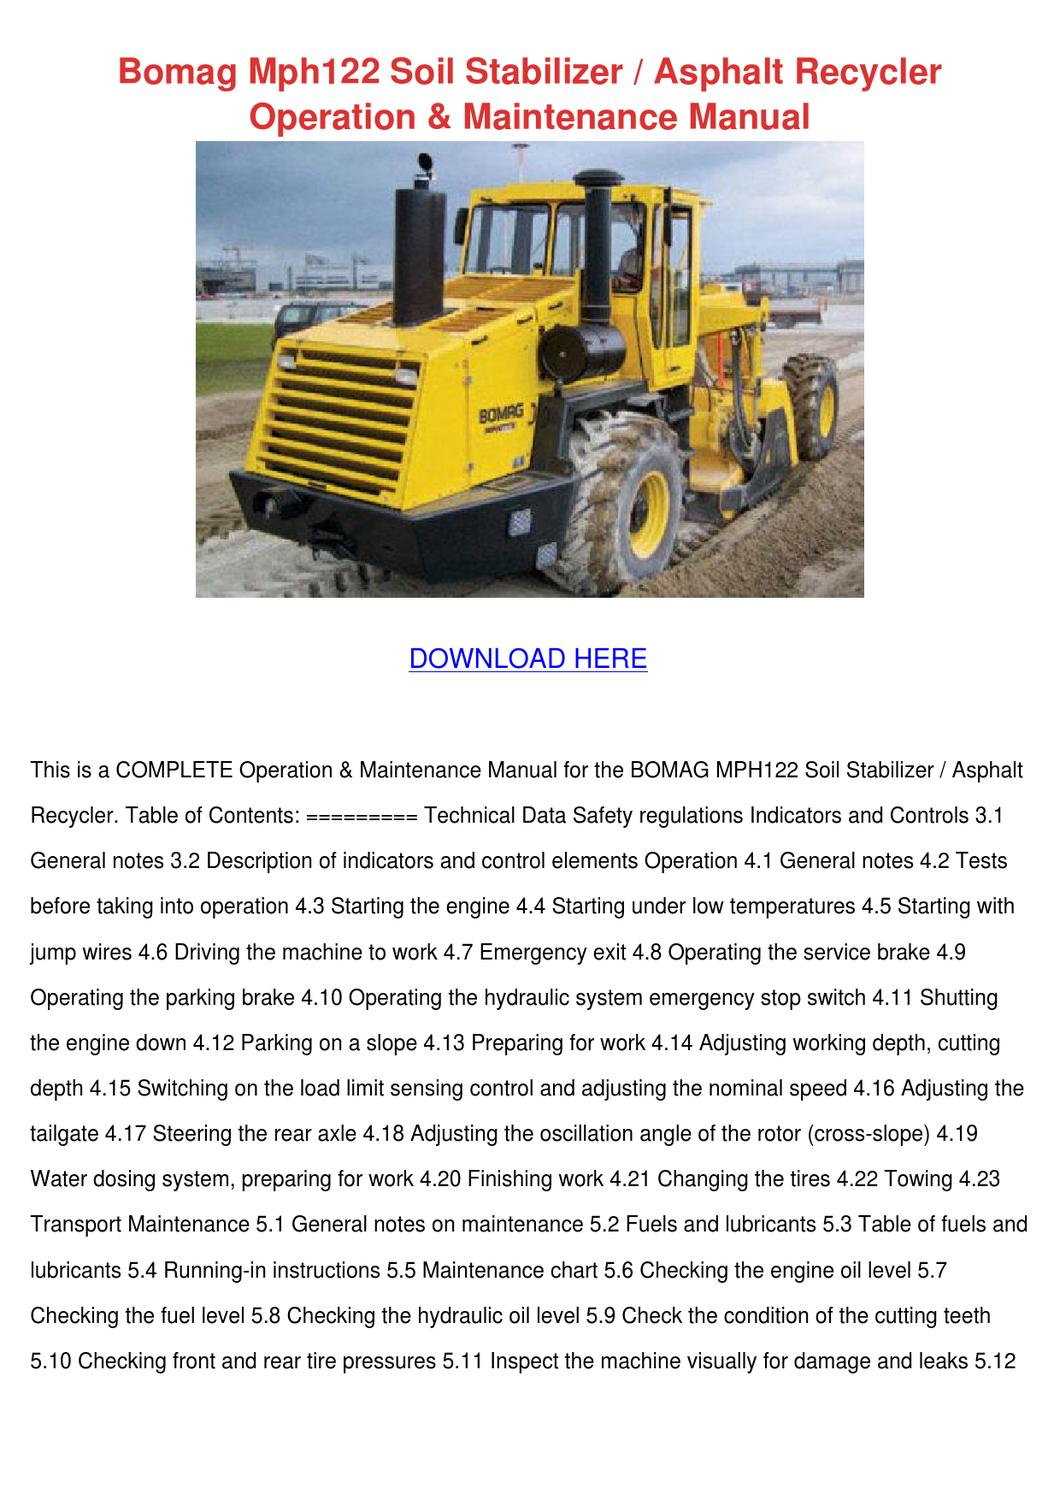 hight resolution of bomag mph122 soil stabilizer asphalt recycler by gitaflannery issuubomag mph122 soil stabilizer asphalt recycler